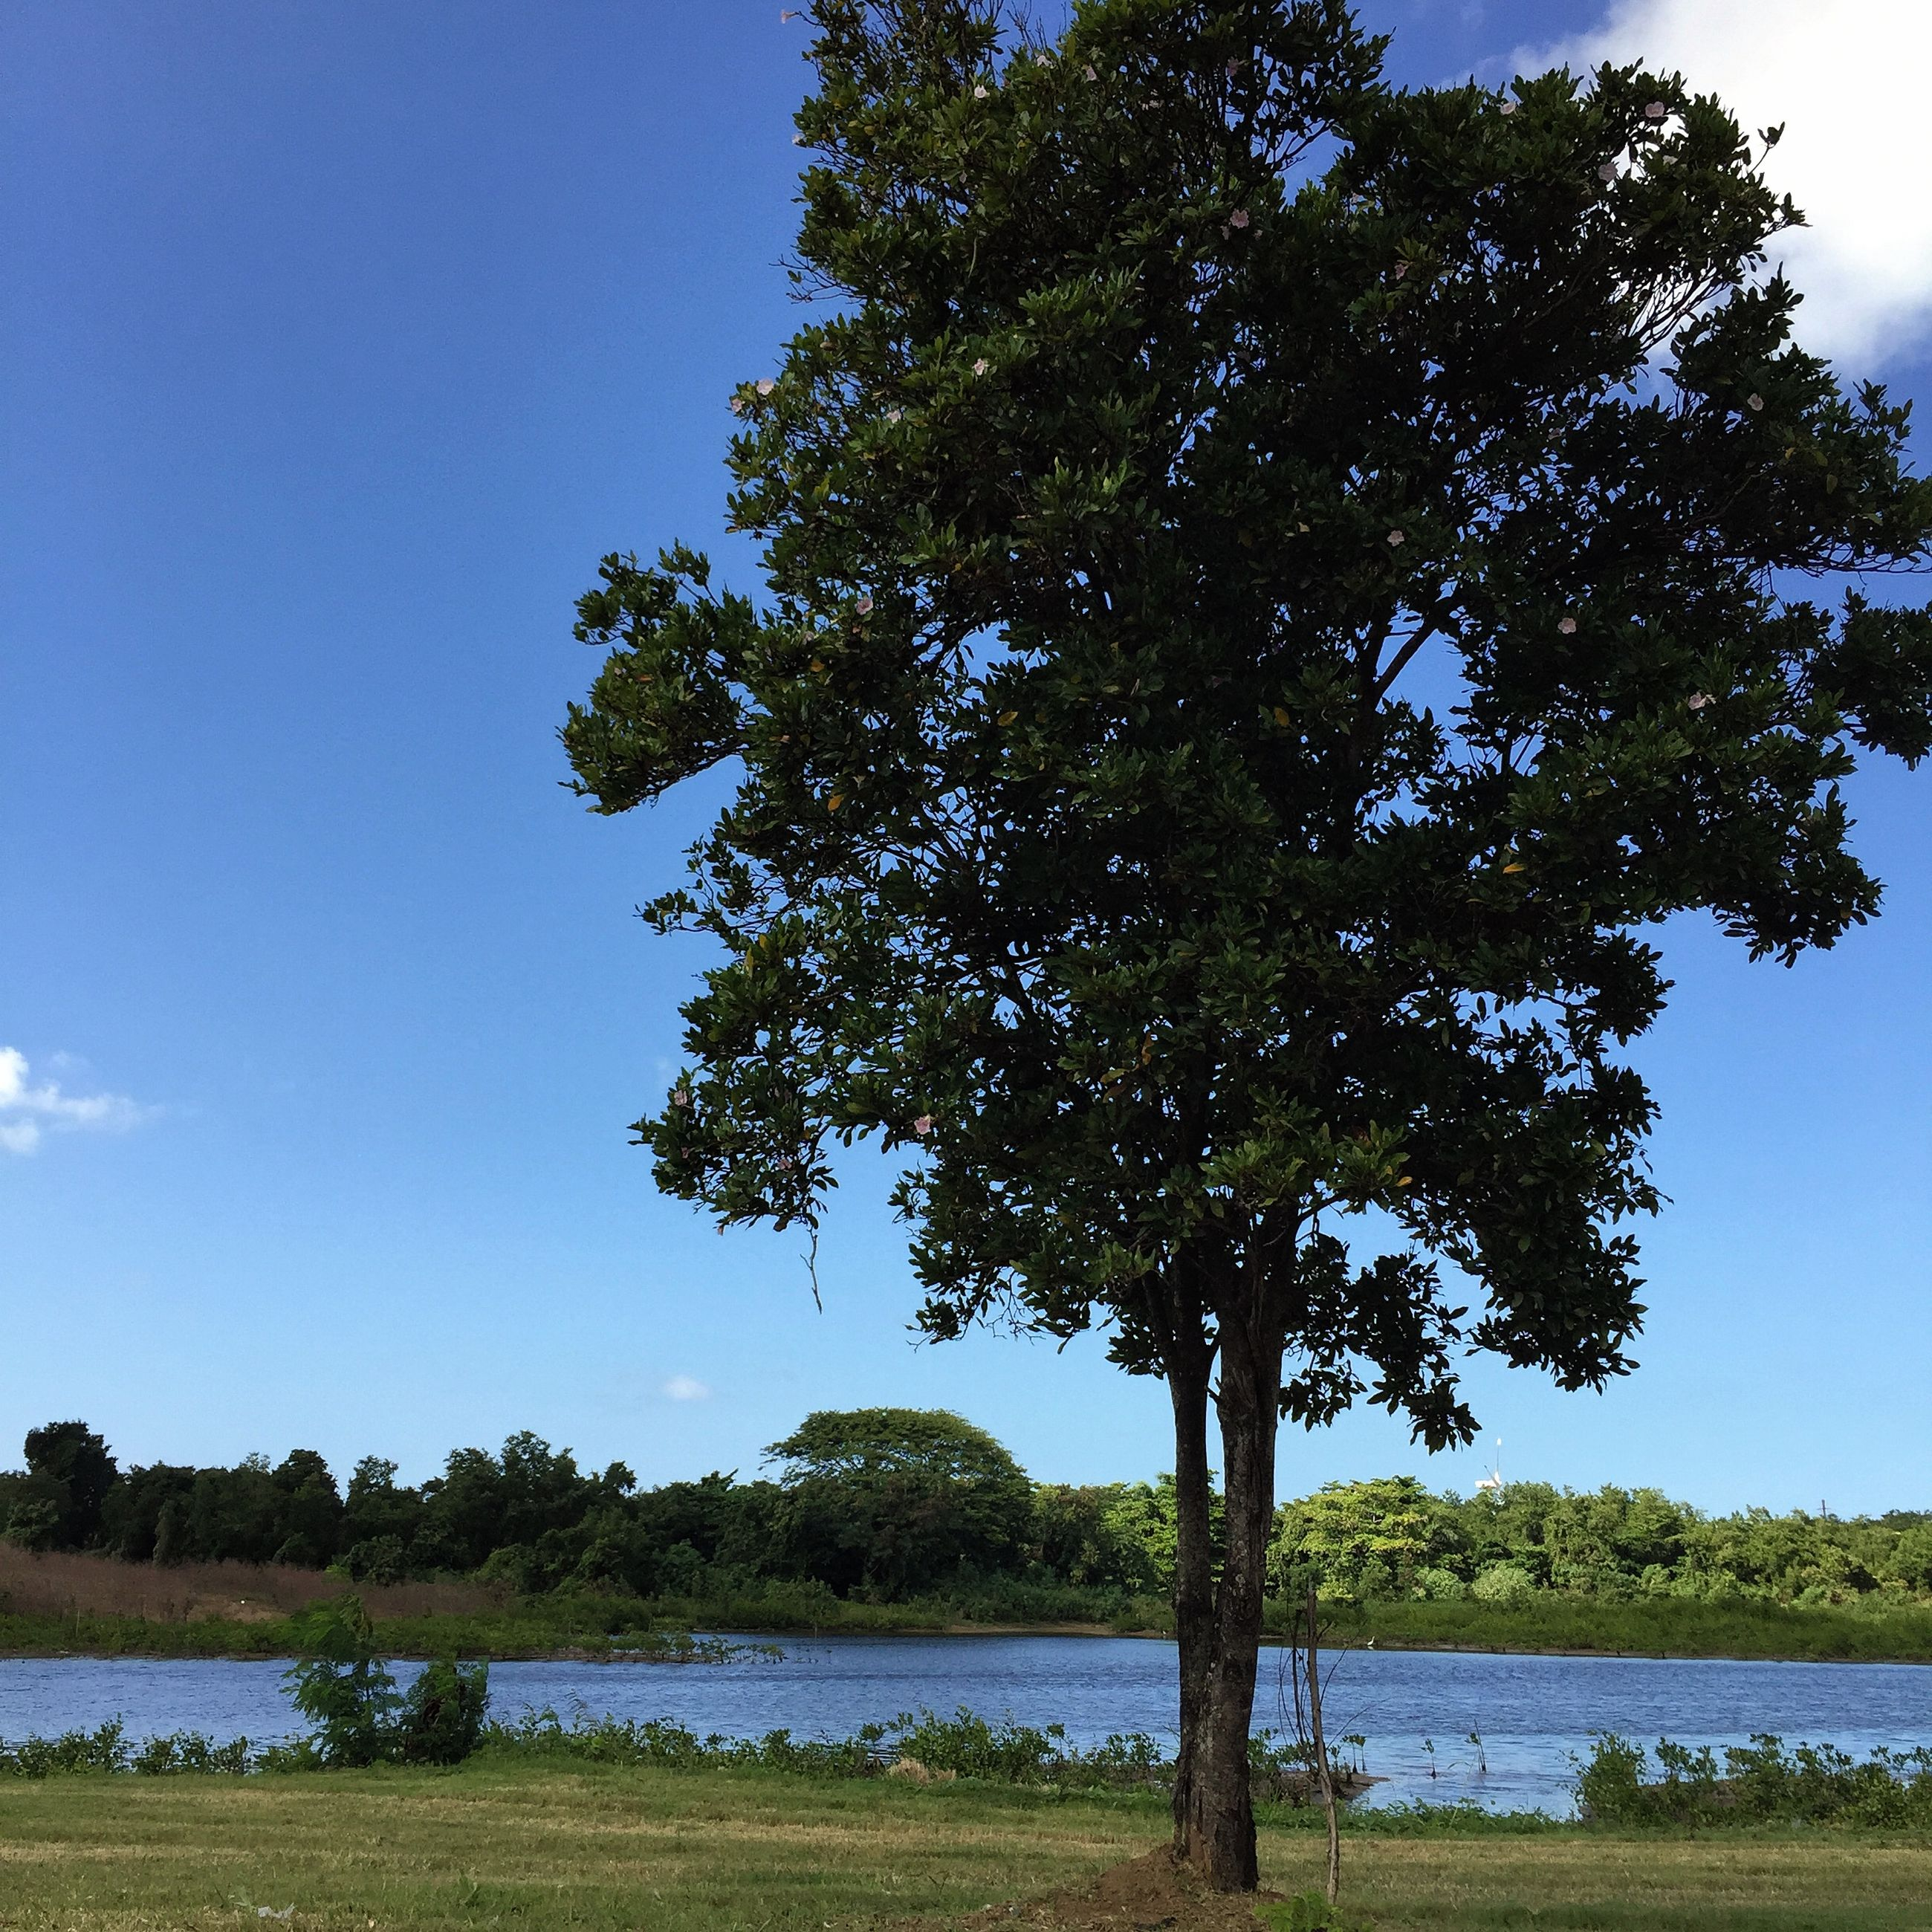 water, tree, tranquil scene, tranquility, lake, scenics, clear sky, blue, beauty in nature, grass, nature, growth, sky, lakeshore, river, idyllic, landscape, riverbank, countryside, tree trunk